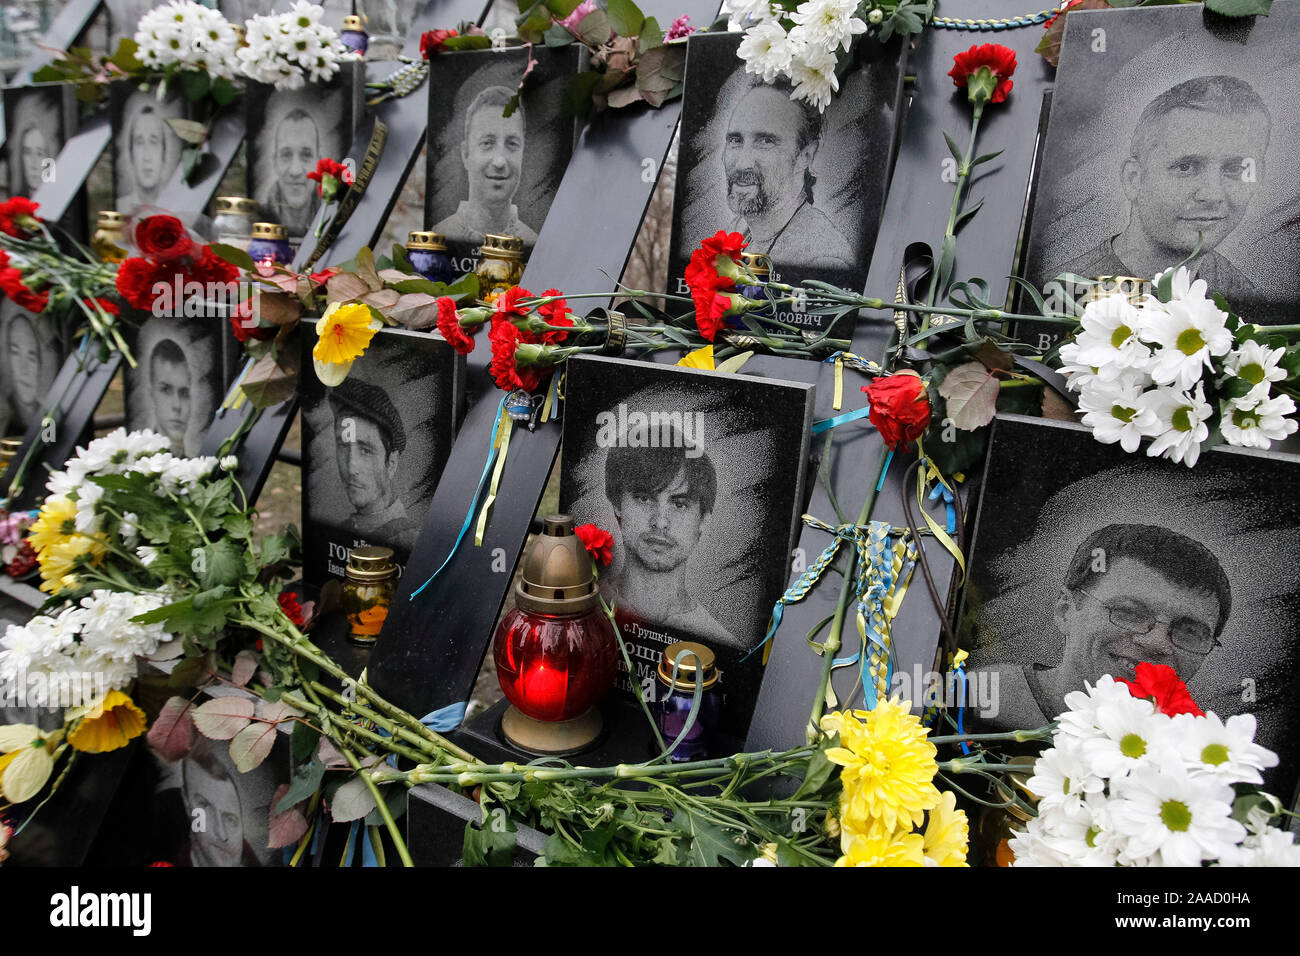 Flowers laid on portraits of dead Maidan activists (Heroes of the Heavenly Hundred) during the anniversary in Kiev.Ukrainians mark the 6th anniversary of the beginning of the Revolution of Dignity or the Euromaidan Revolution in which more than hundred anti-government protesters died. Stock Photo